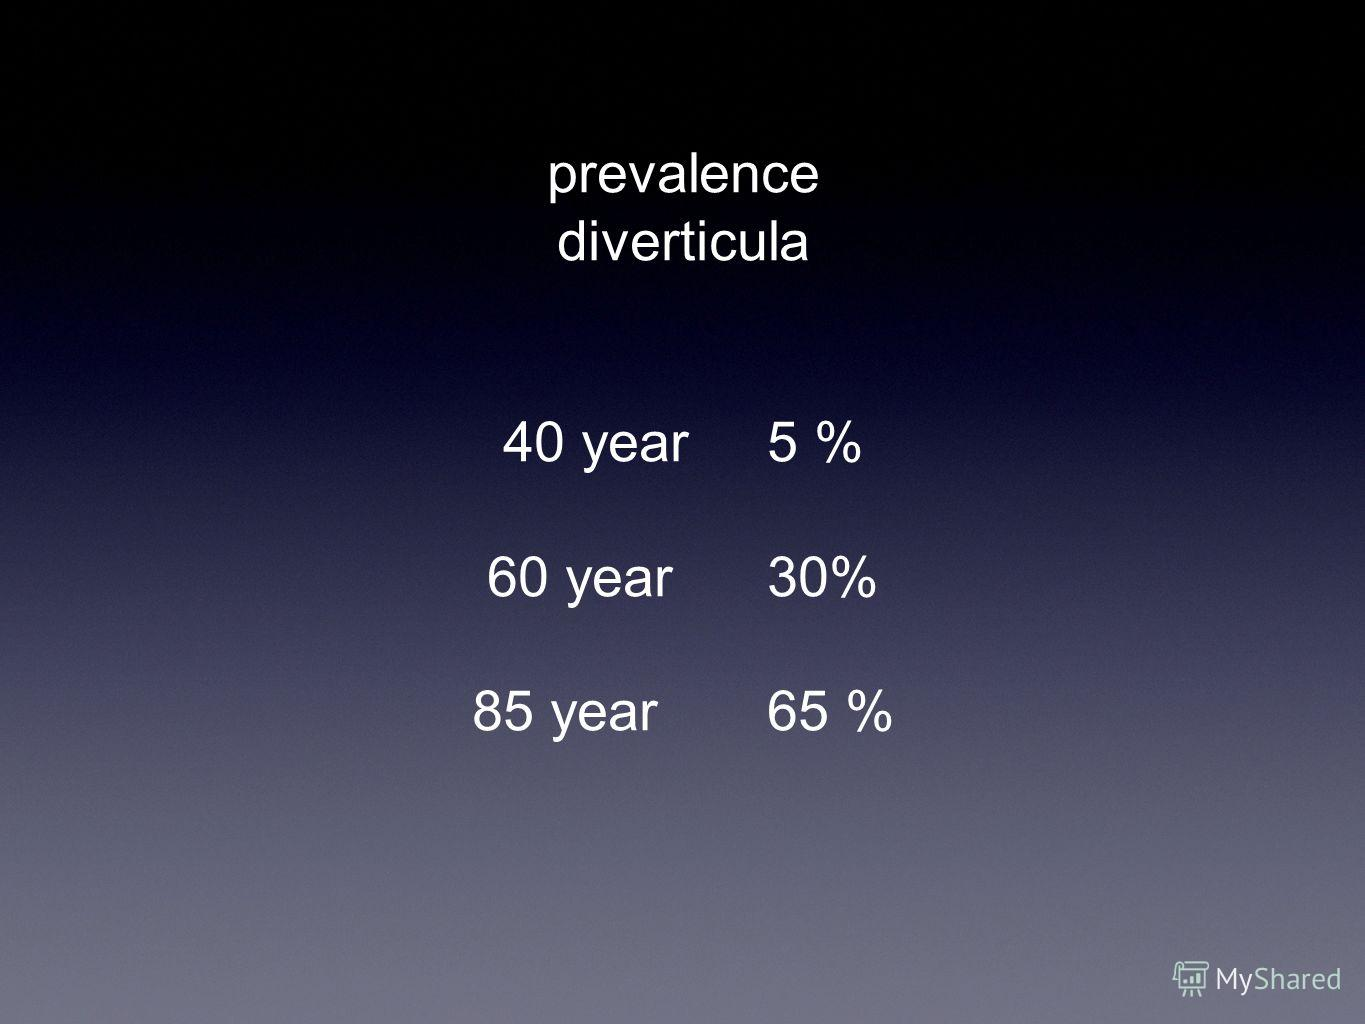 prevalence diverticula 40 year 5 % 60 year 30% 85 year 65 %